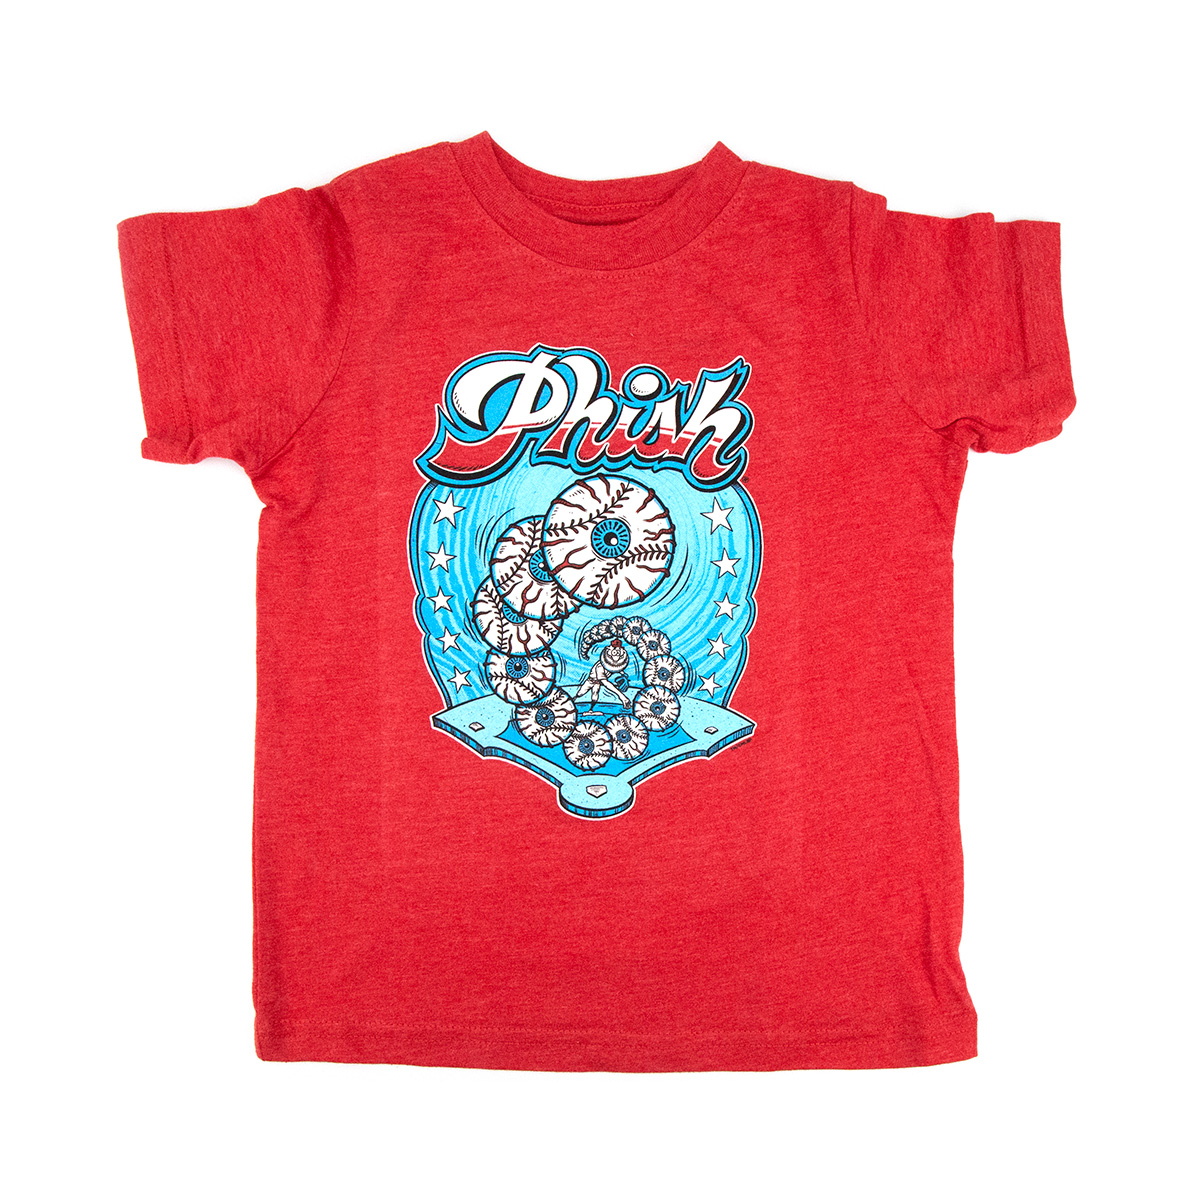 Kid's Good Eye Pitcher T-Shirt on Vintage Red